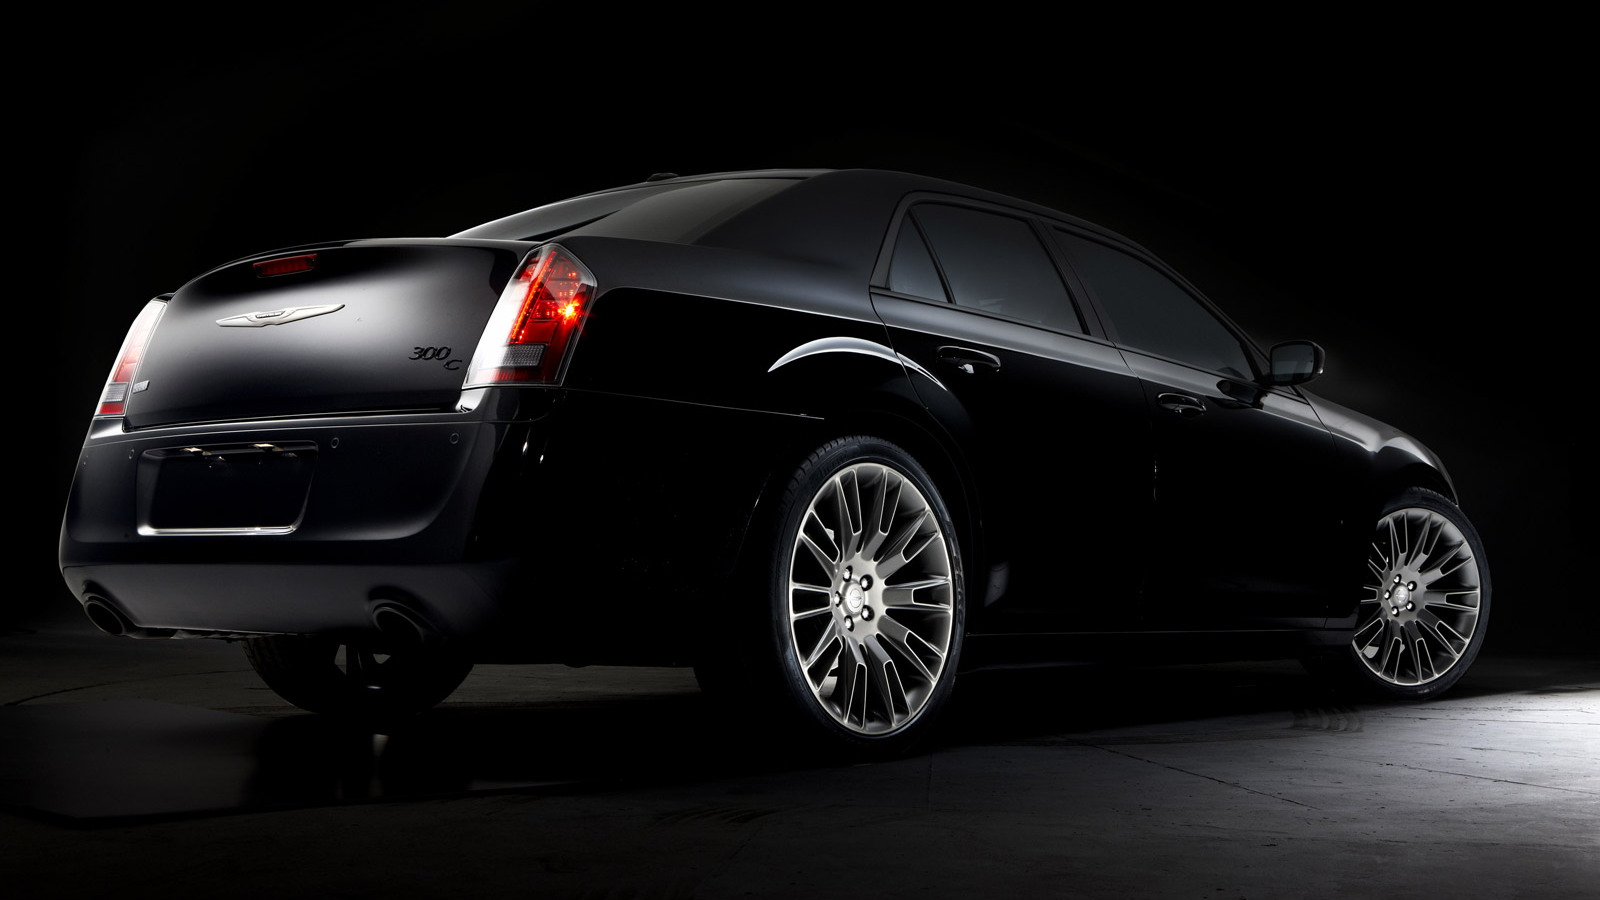 2013 Chrysler 300C John Varvatos Limited Edition